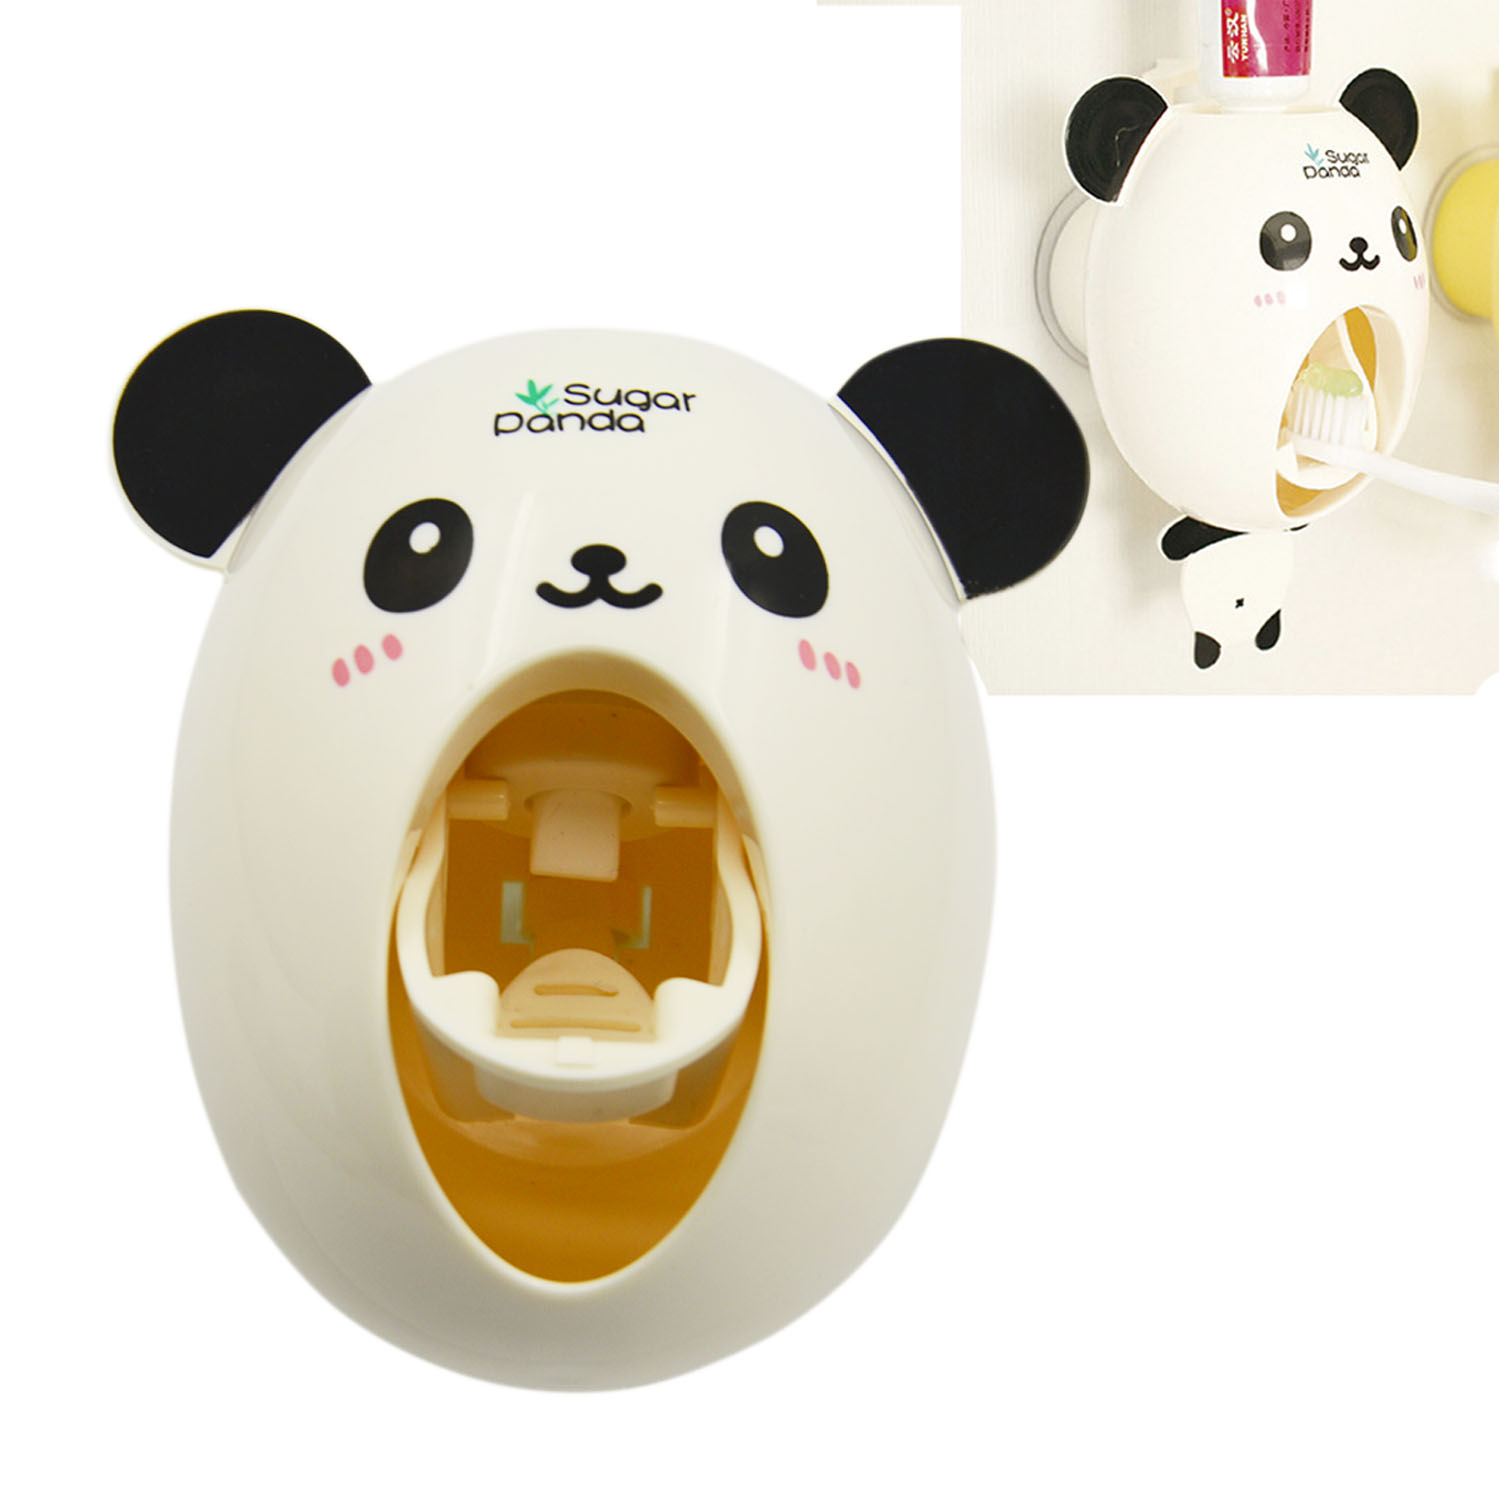 Cartoon Panda Automatic Toothpaste Squeezer Dispenser with Suction Cup Novelty Home Bathroom Accessories Gadget(China (Mainland))